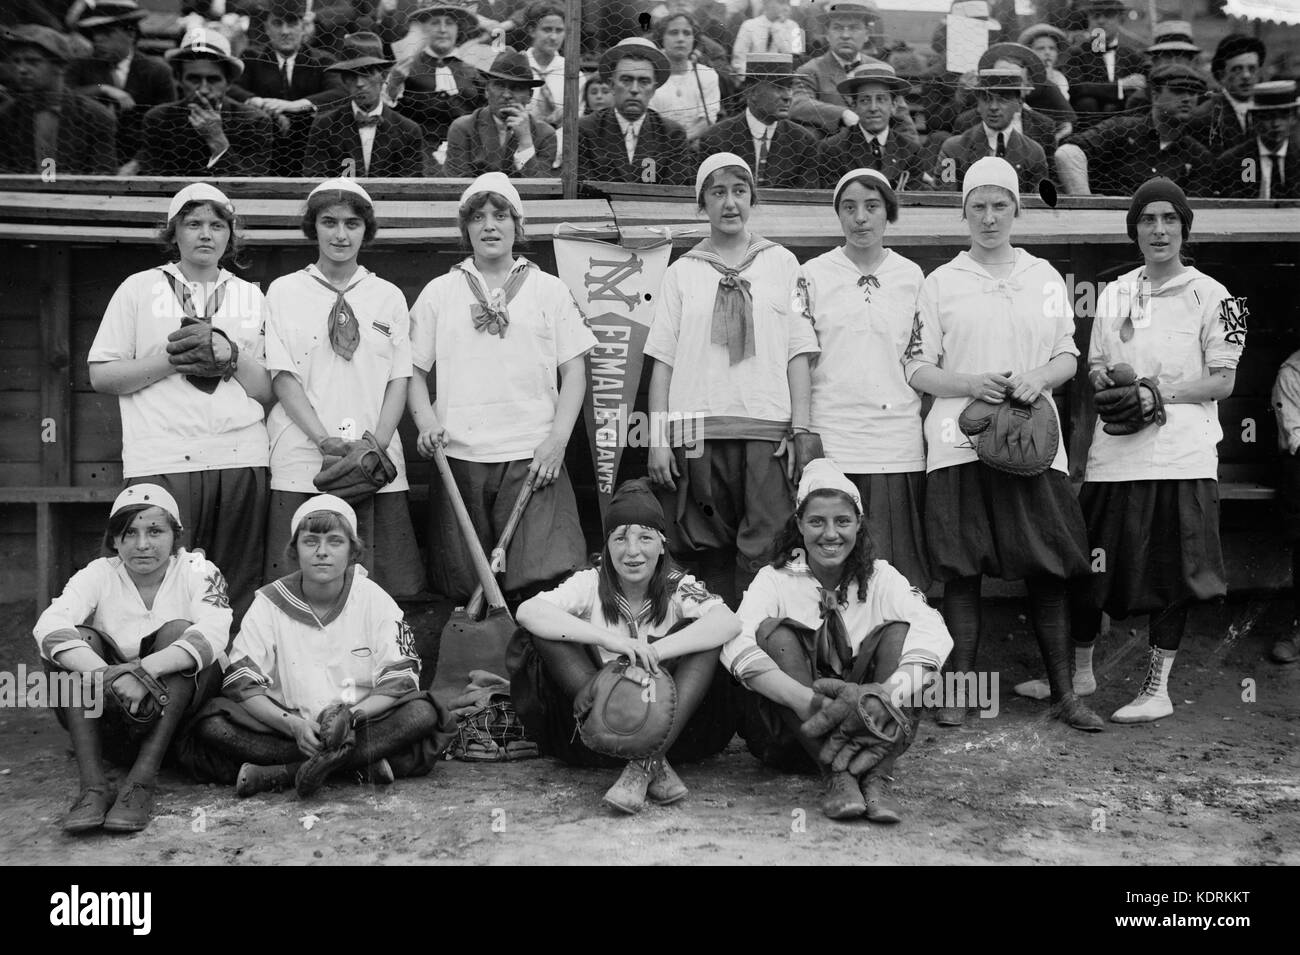 New York Giants baseball féminin, 1913 Photo Stock